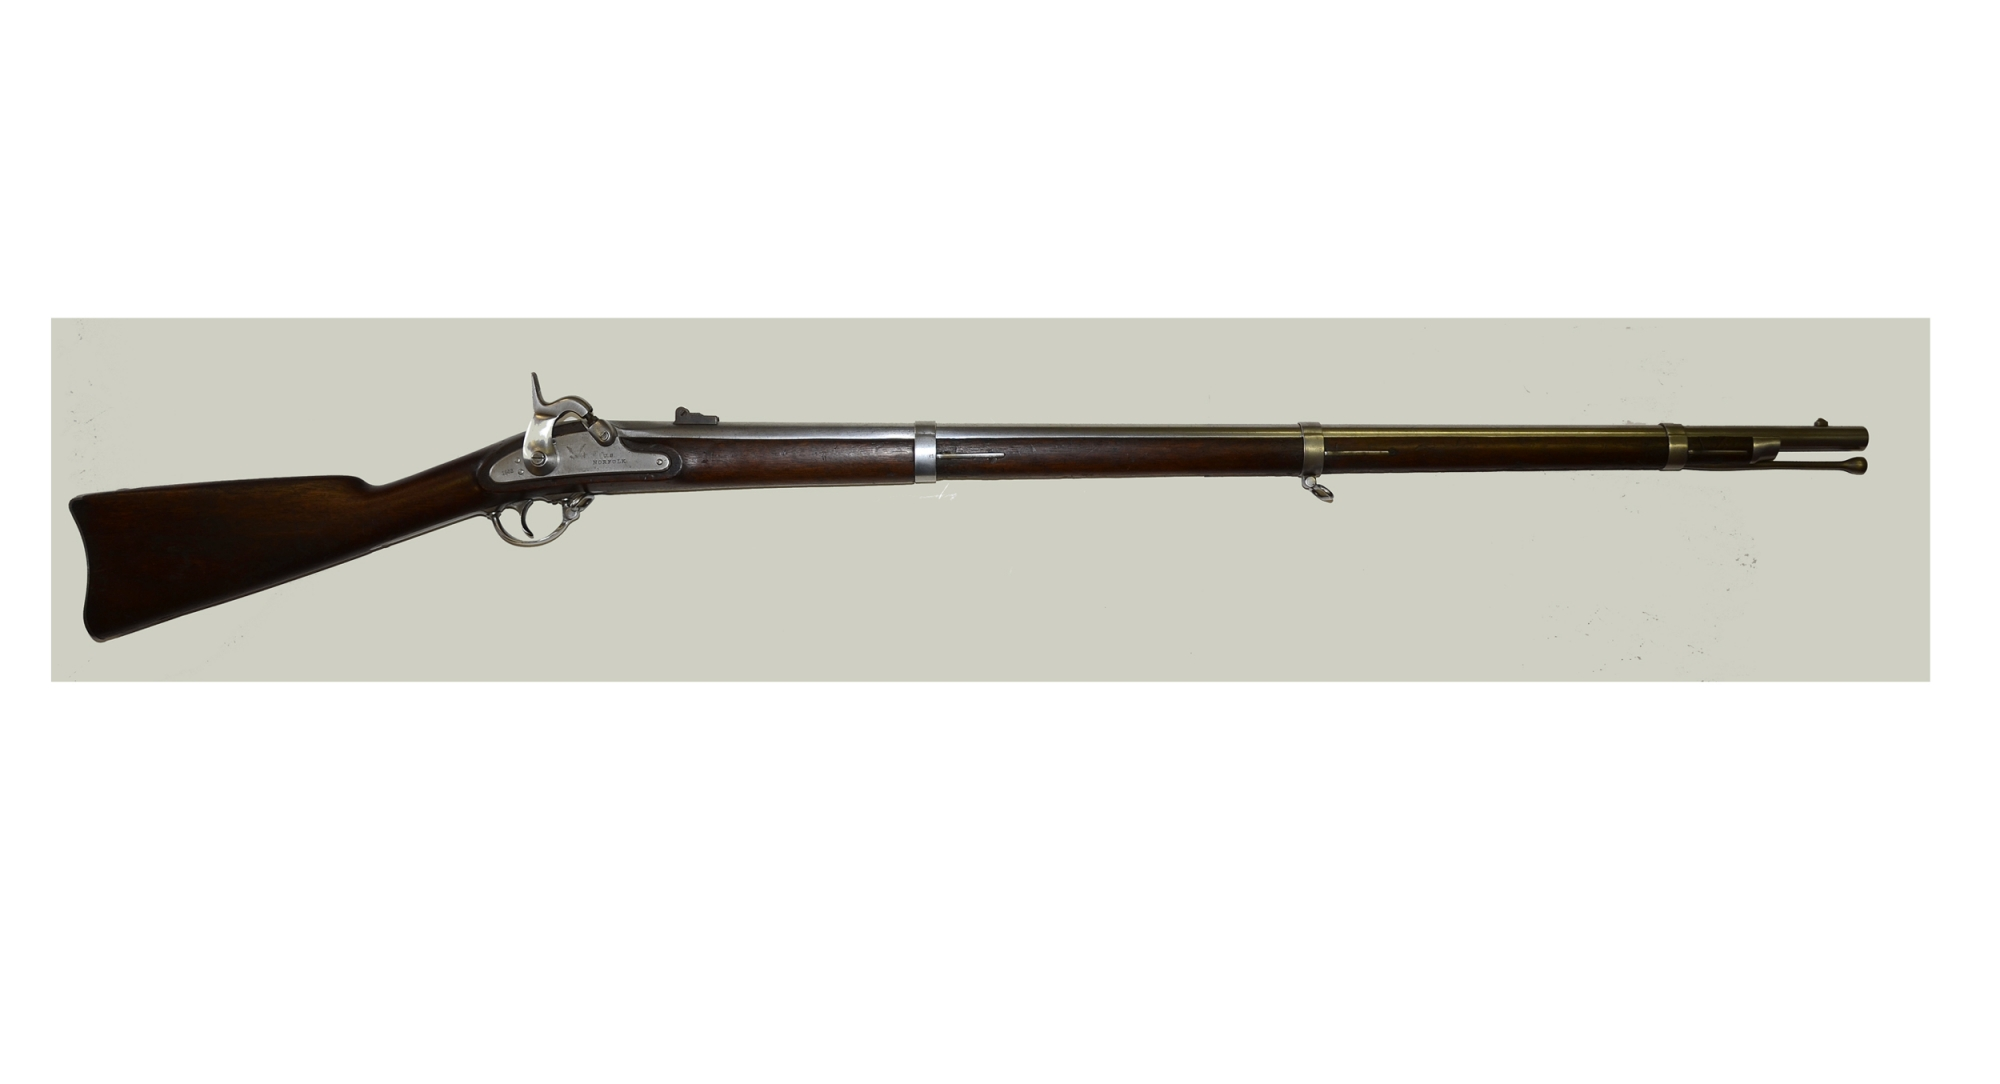 FINE NORFOLK CONTRACT .58 CALIBER MODEL 1861 MUSKET